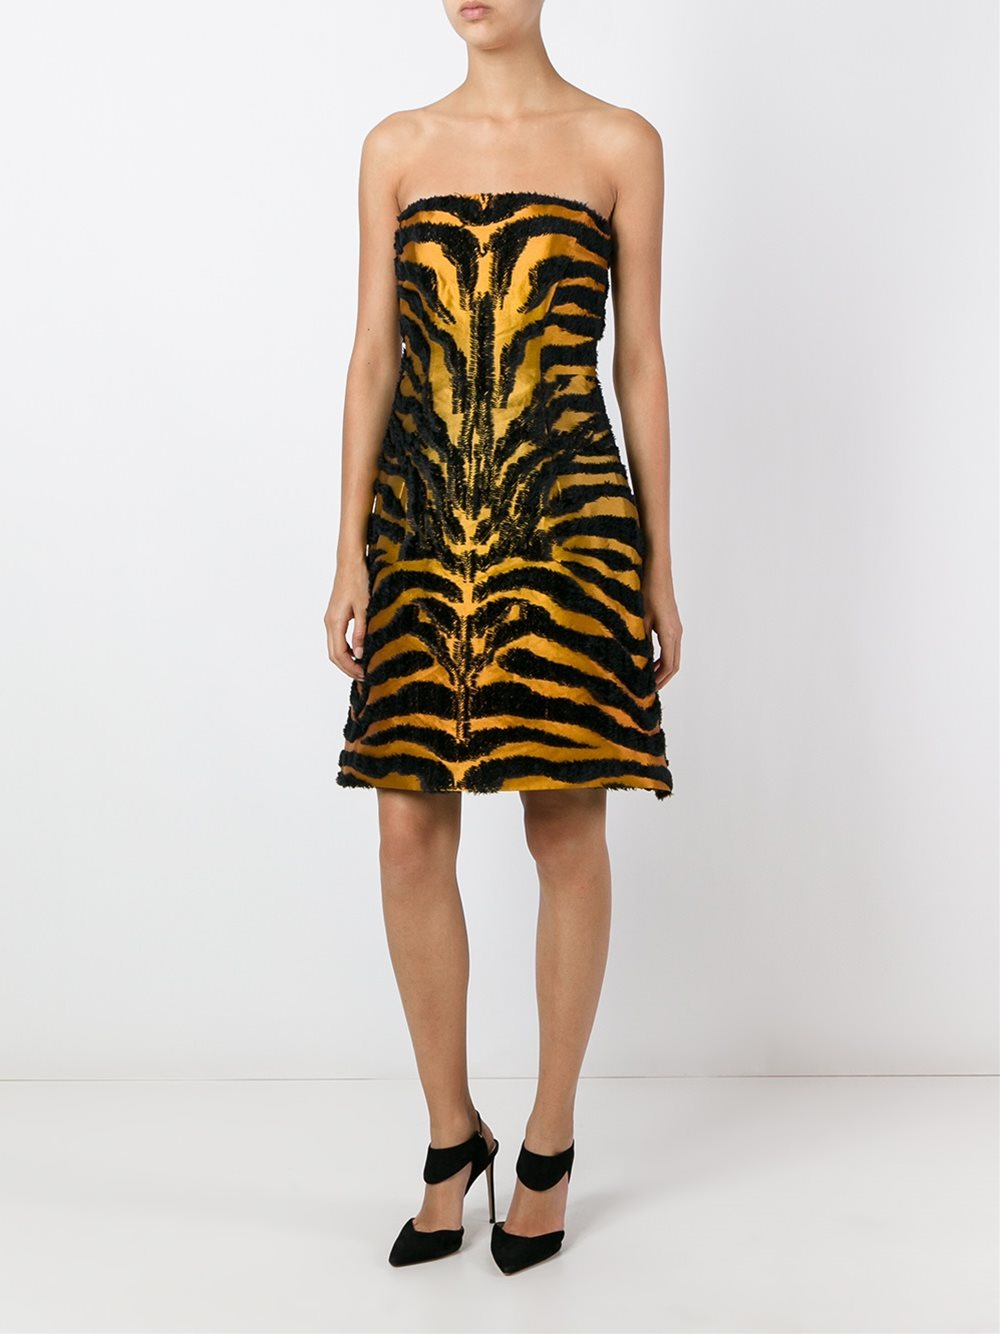 Find great deals on eBay for tiger print dress. Shop with confidence.